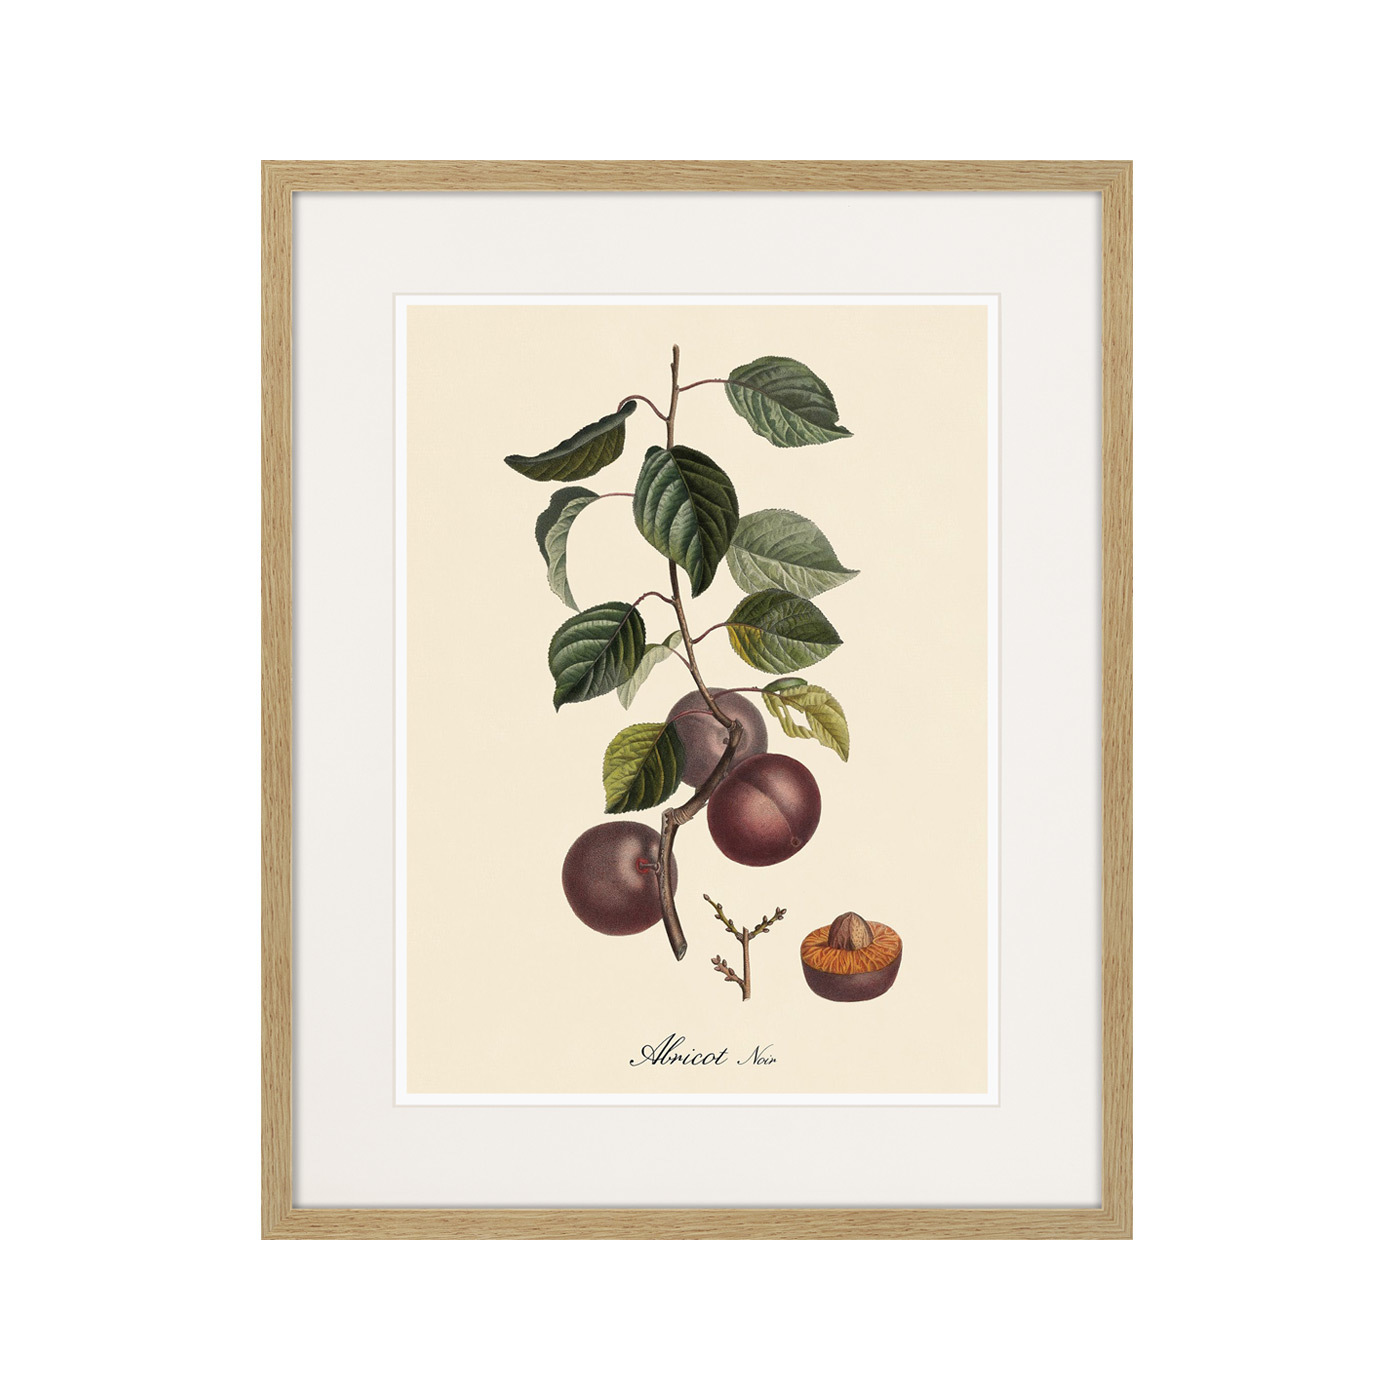 Juicy fruit lithography №6, 1870г.